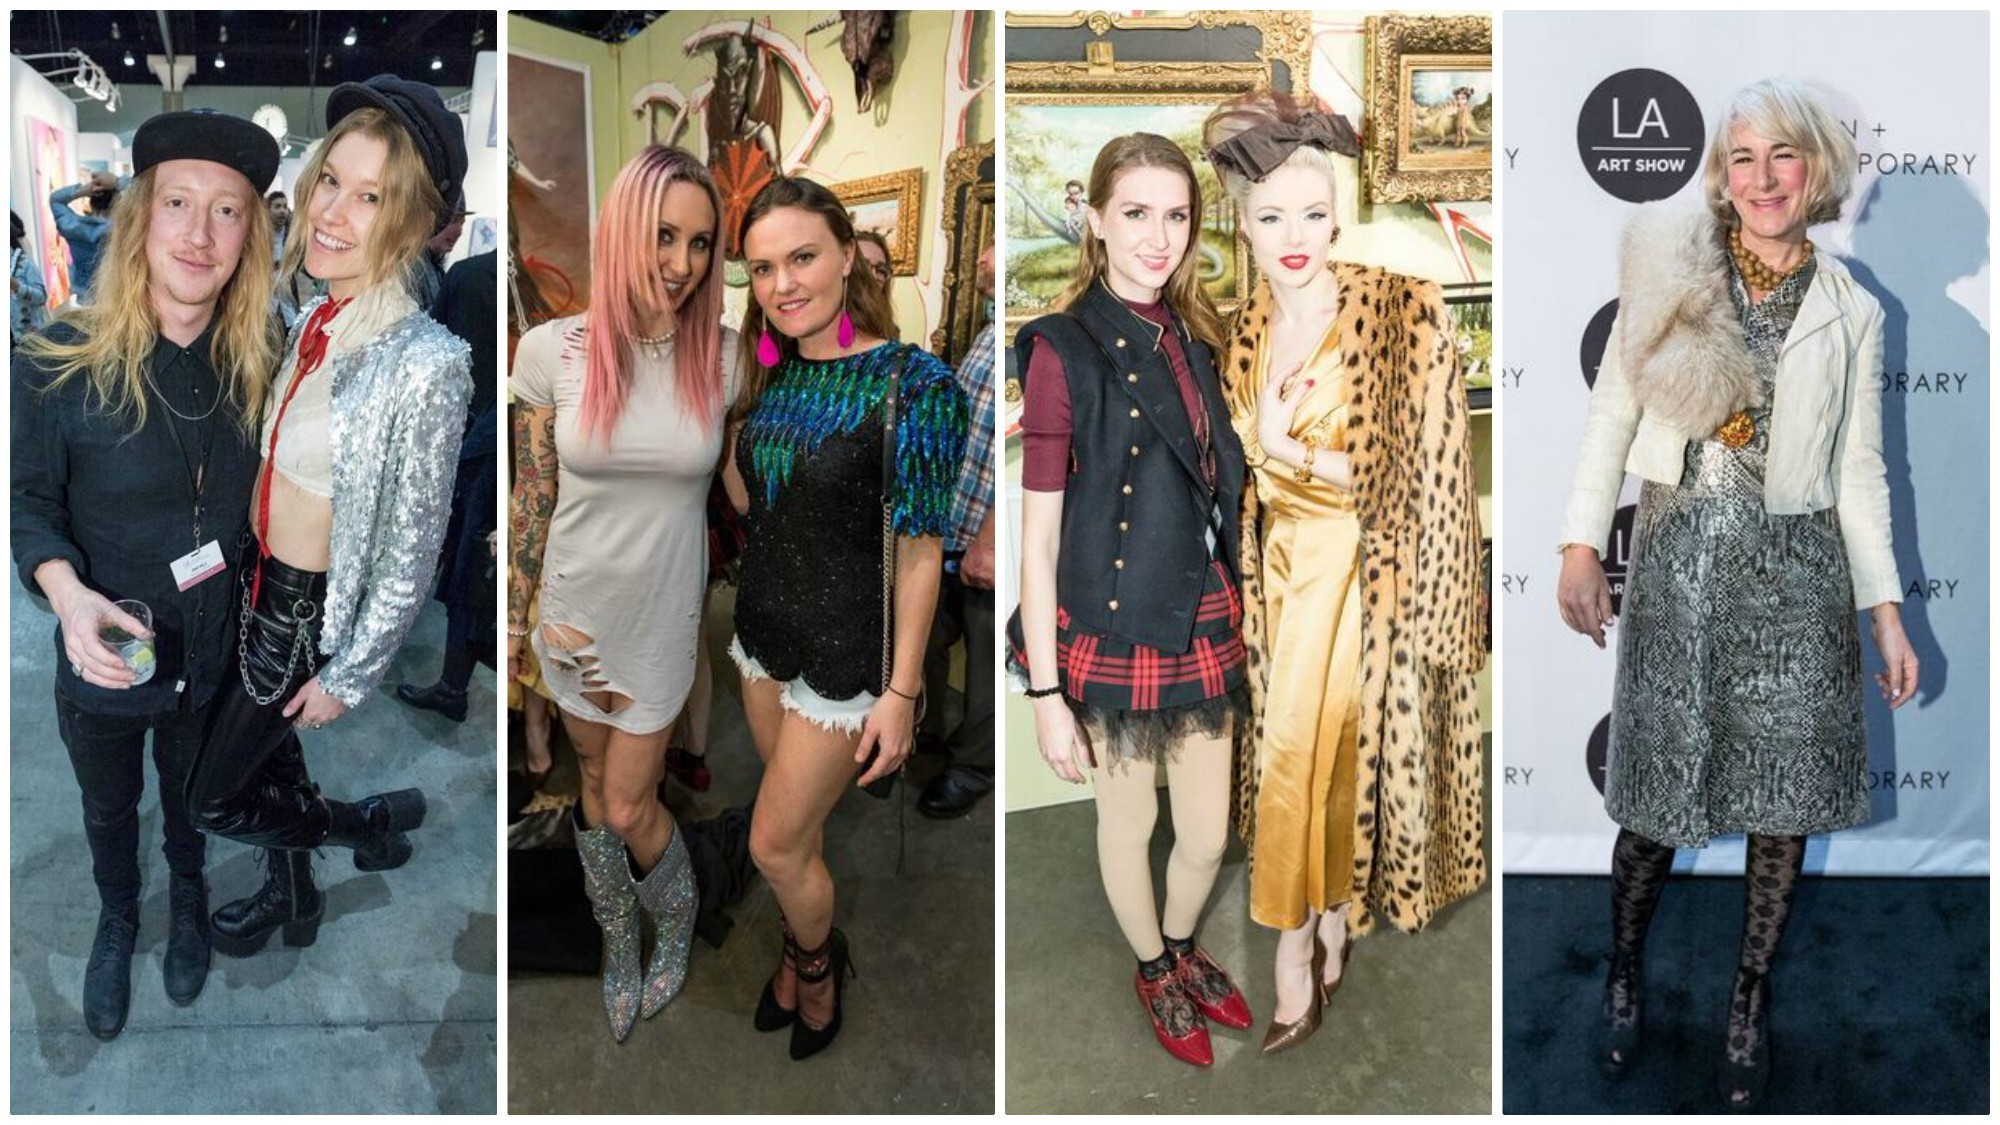 A look at some of the outfits worn by guests during the L.A. Art Show gala on Wednesday.